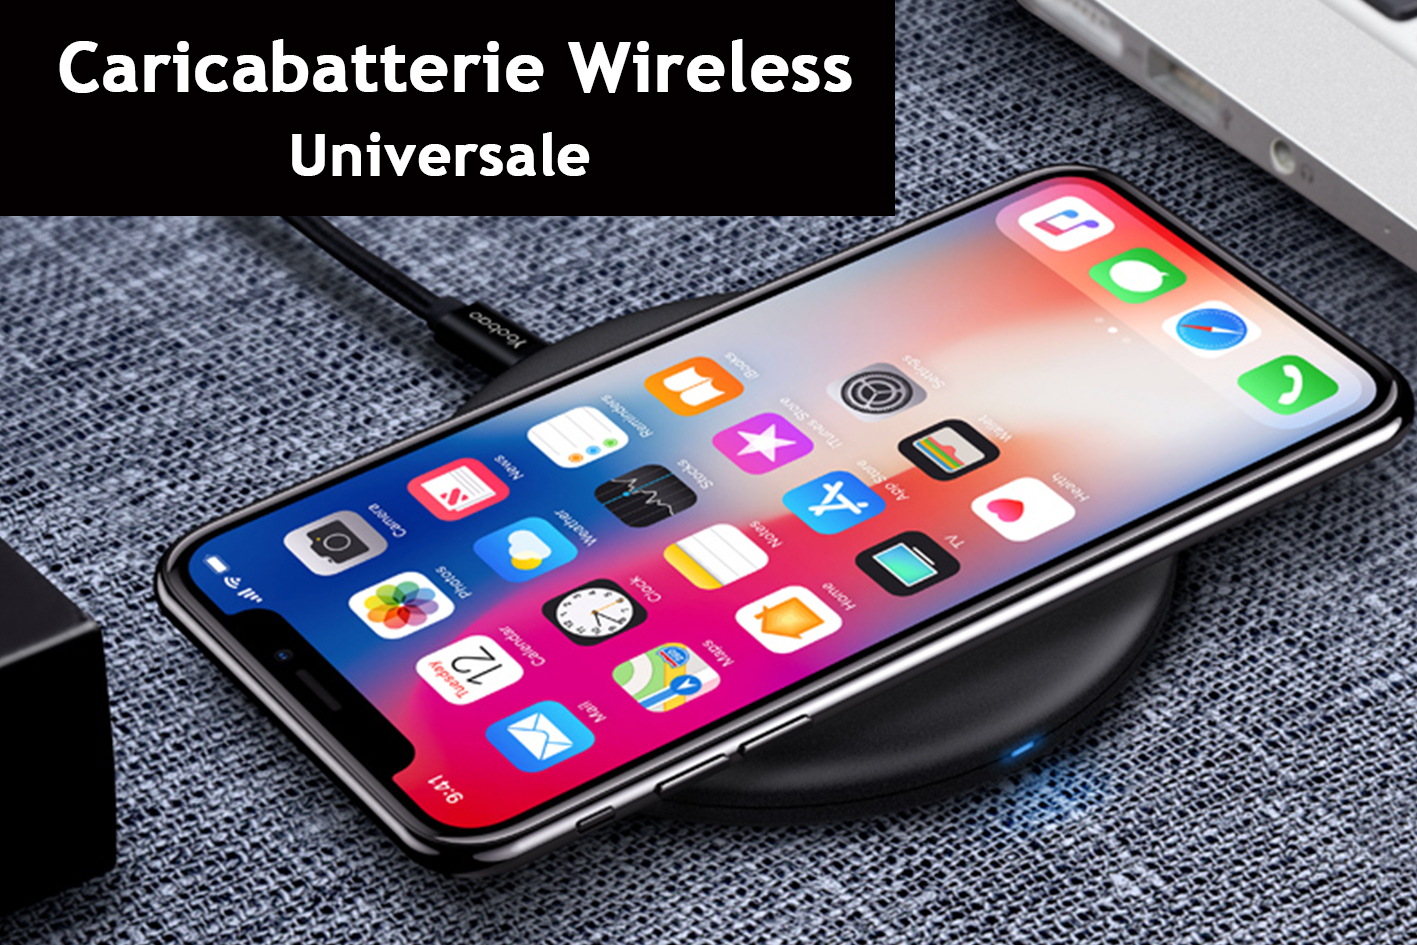 Caricabatterie Wireless Veloce Black 10W Slim QI per iPhone 8 iPhone 8plus iPhone X iPhone XL Samsung S6 S6 edge Note 5 LG G3 G5 G6 Nokia Lumia830 Lumia920 Lumia1020 Lumia1520 Google Nexus4 Nexus5 Nexus6 Huawei Mate RS - PZ